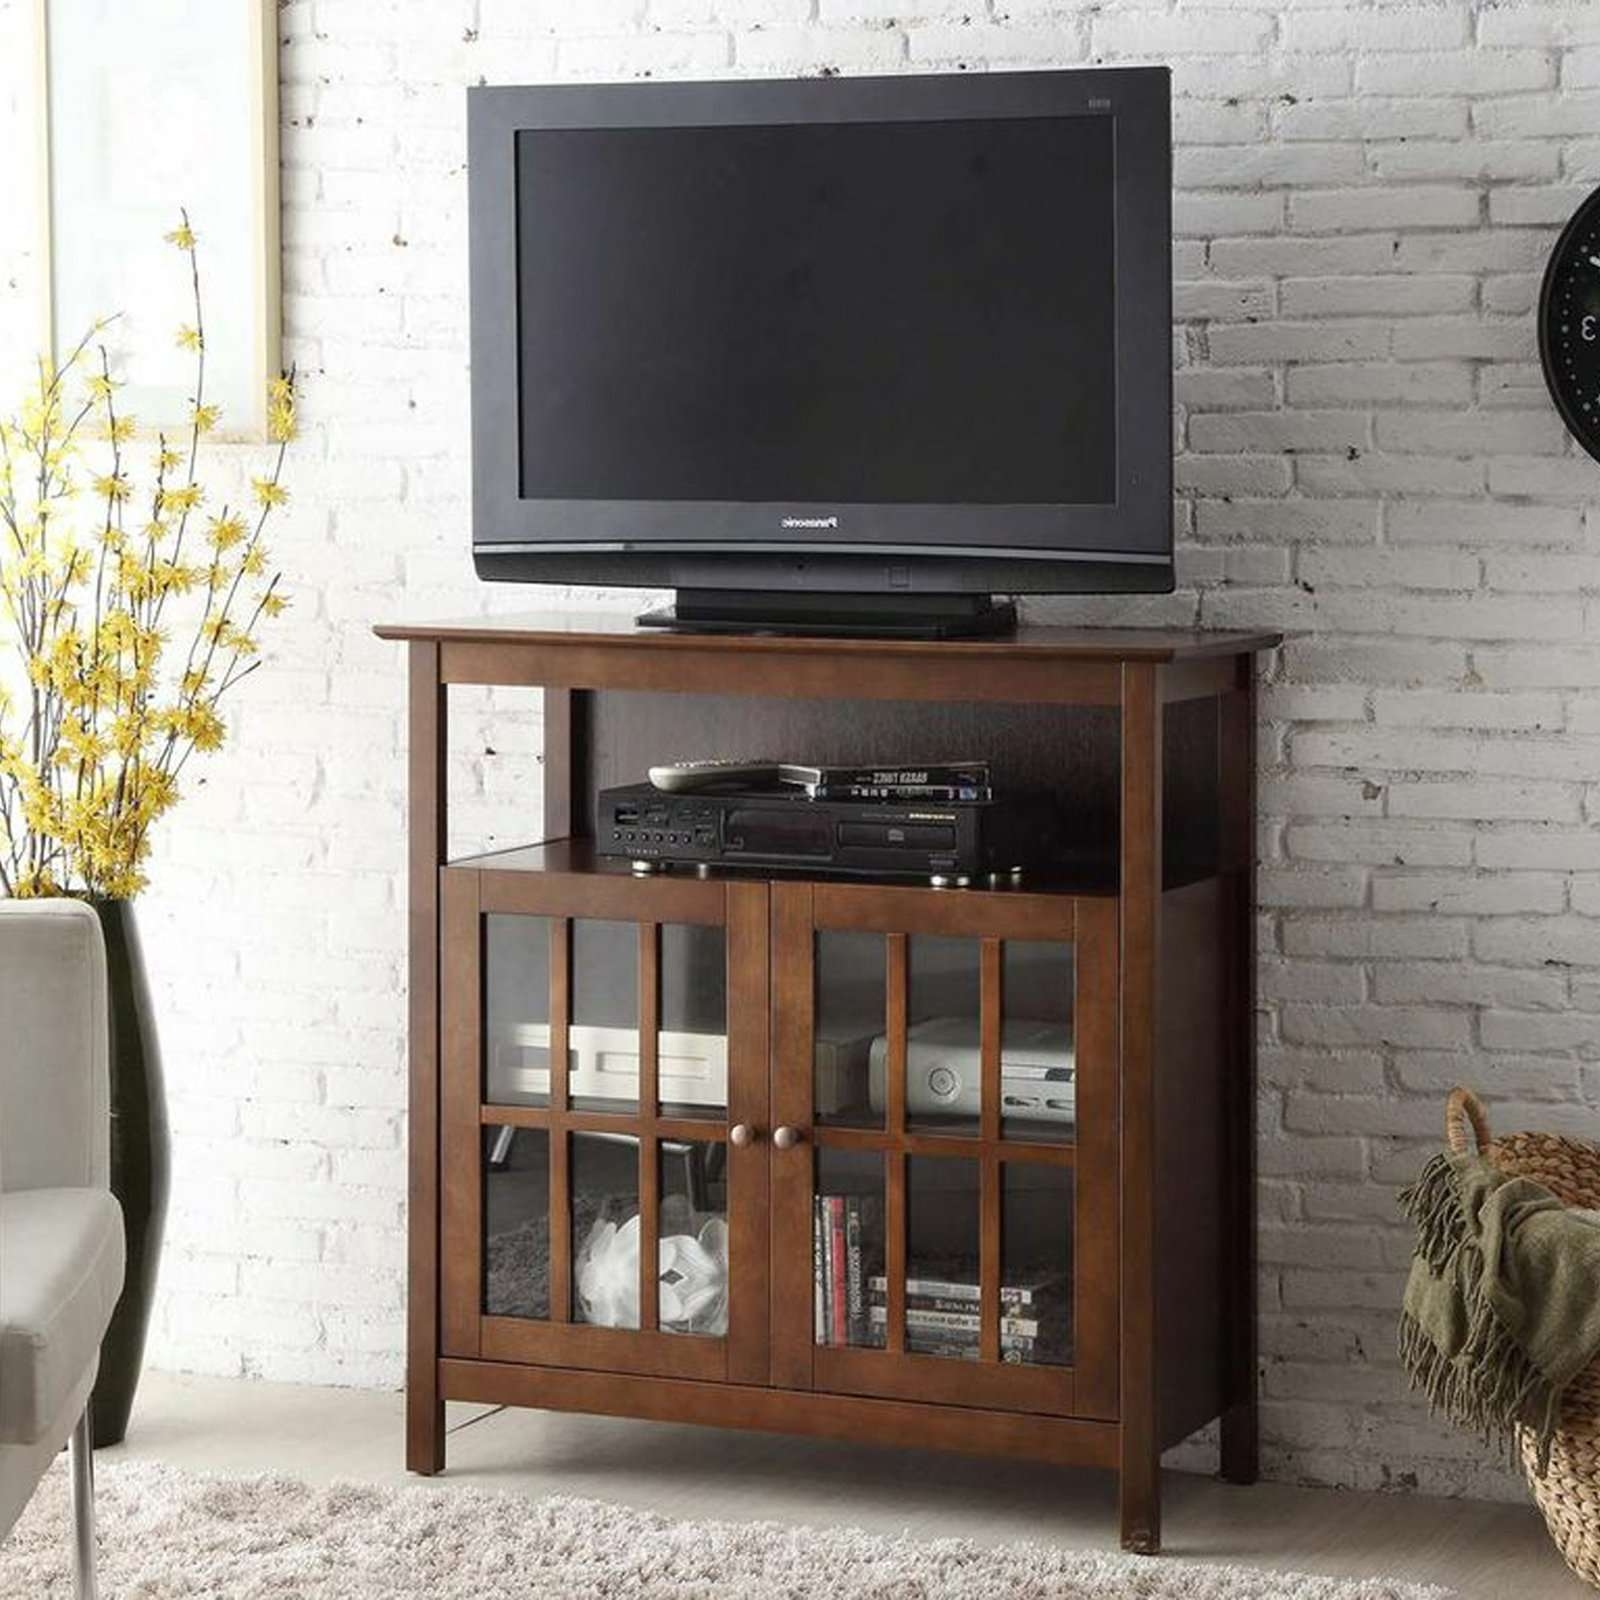 Convenience Concepts Big Sur Highboy Tv Stand | Hayneedle Within Highboy Tv Stands (View 4 of 15)